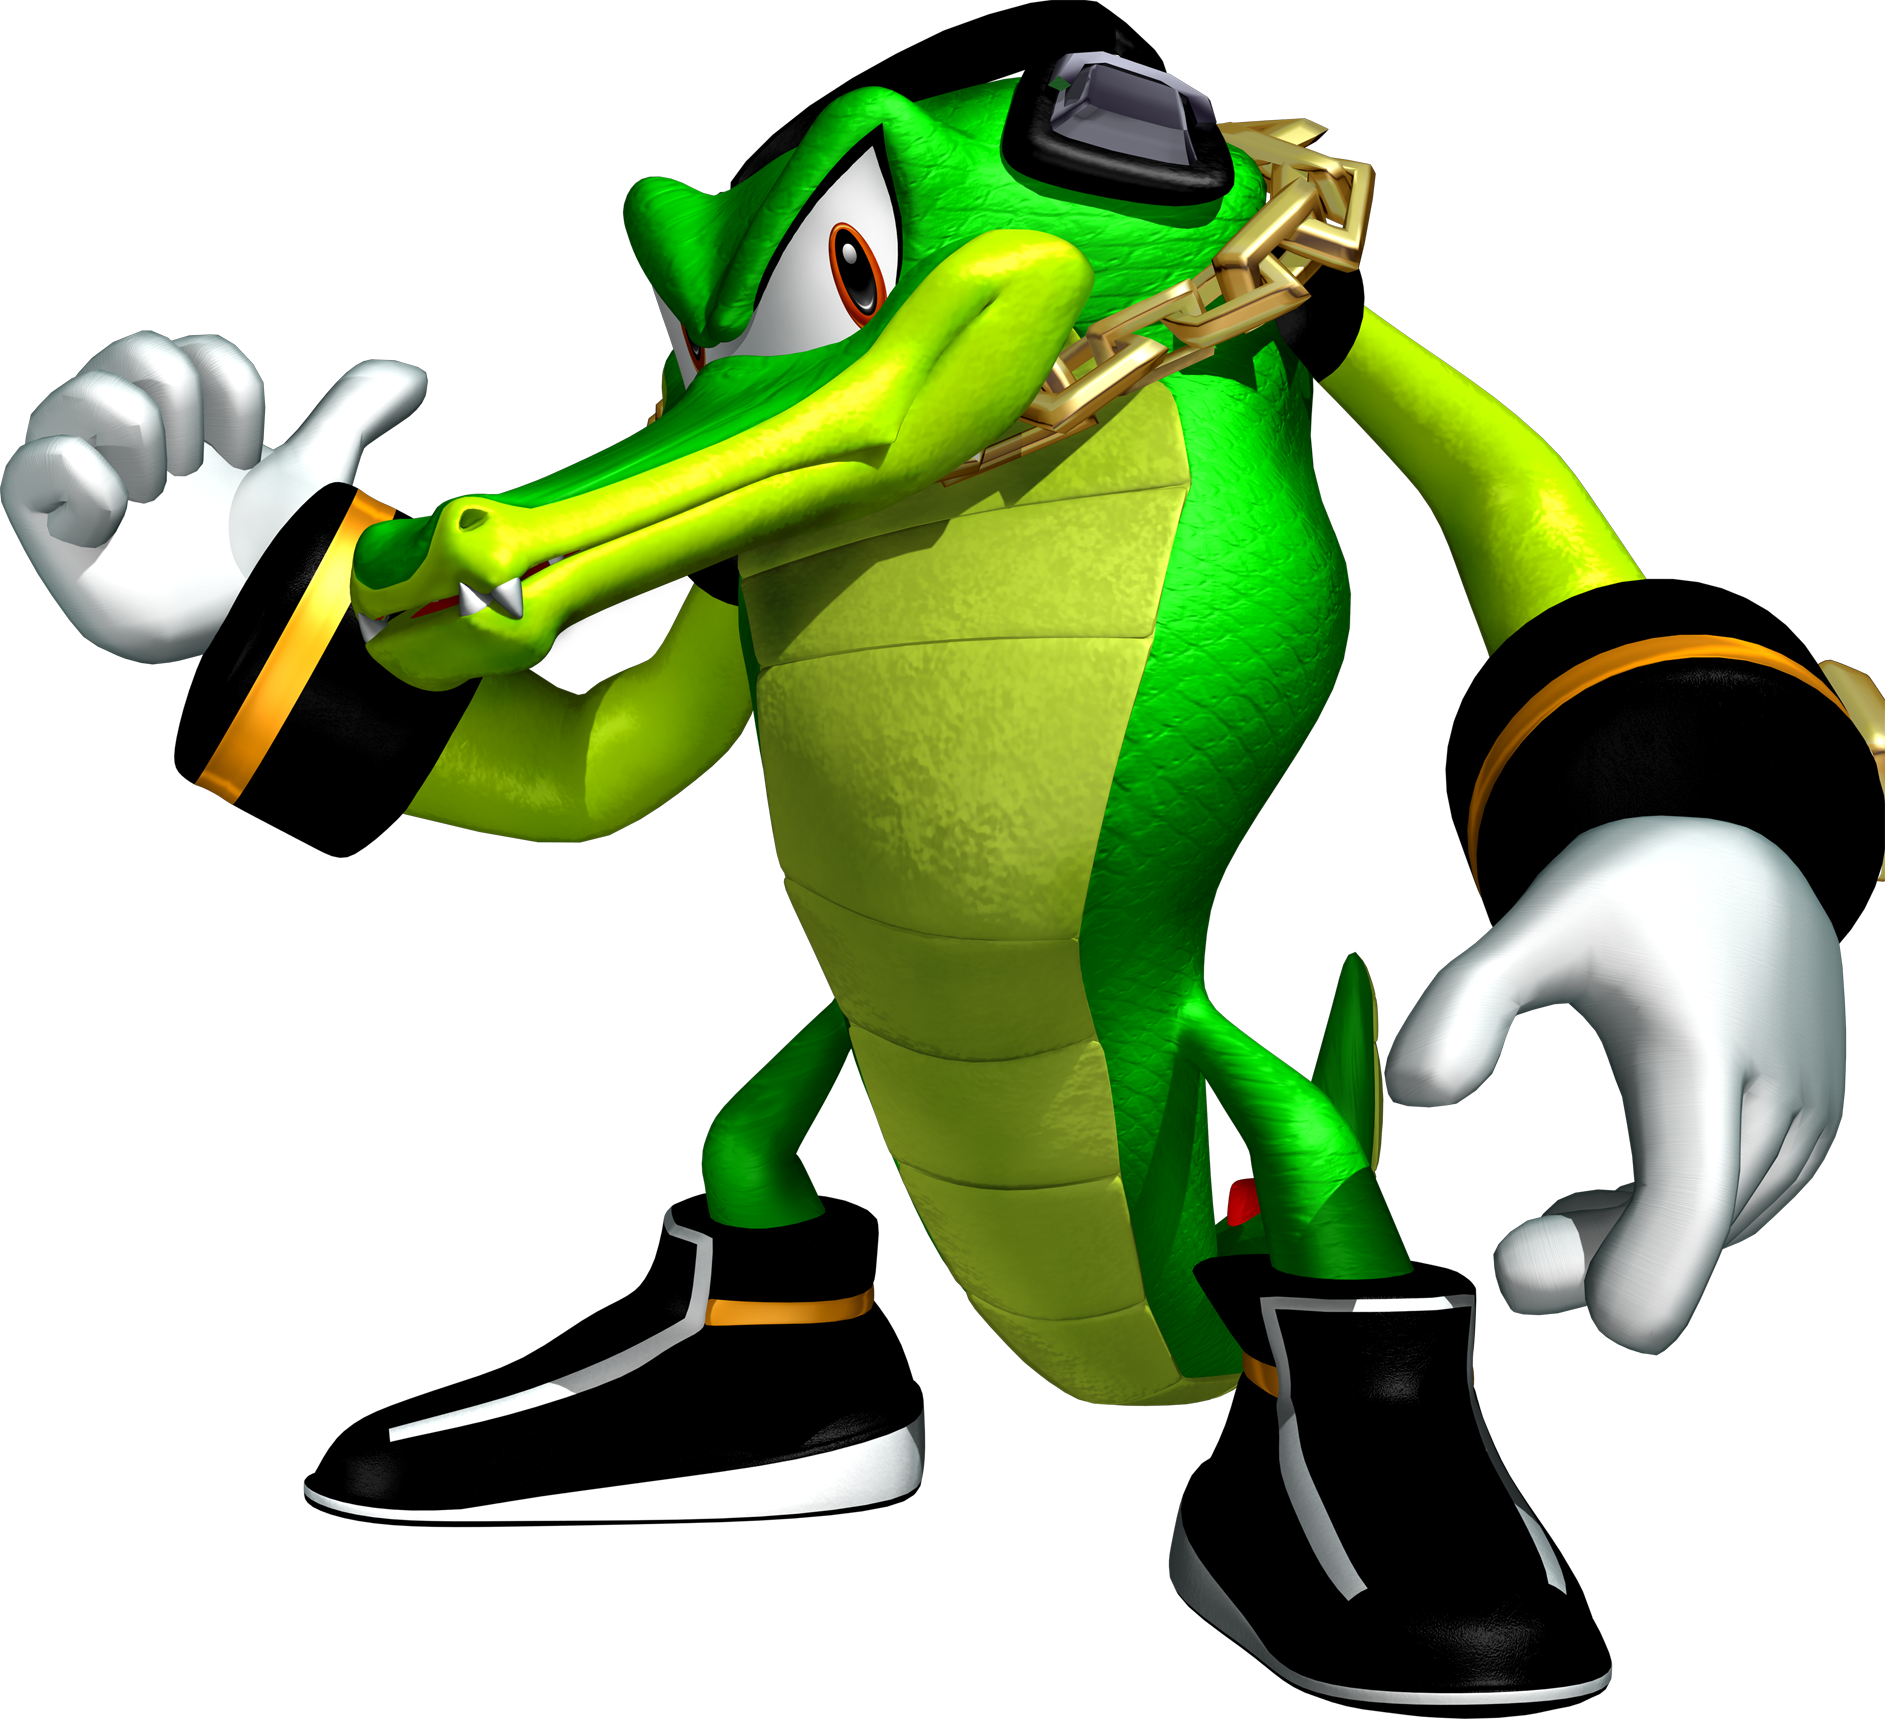 banner black and white Vector costume sonic. The crocodile is a